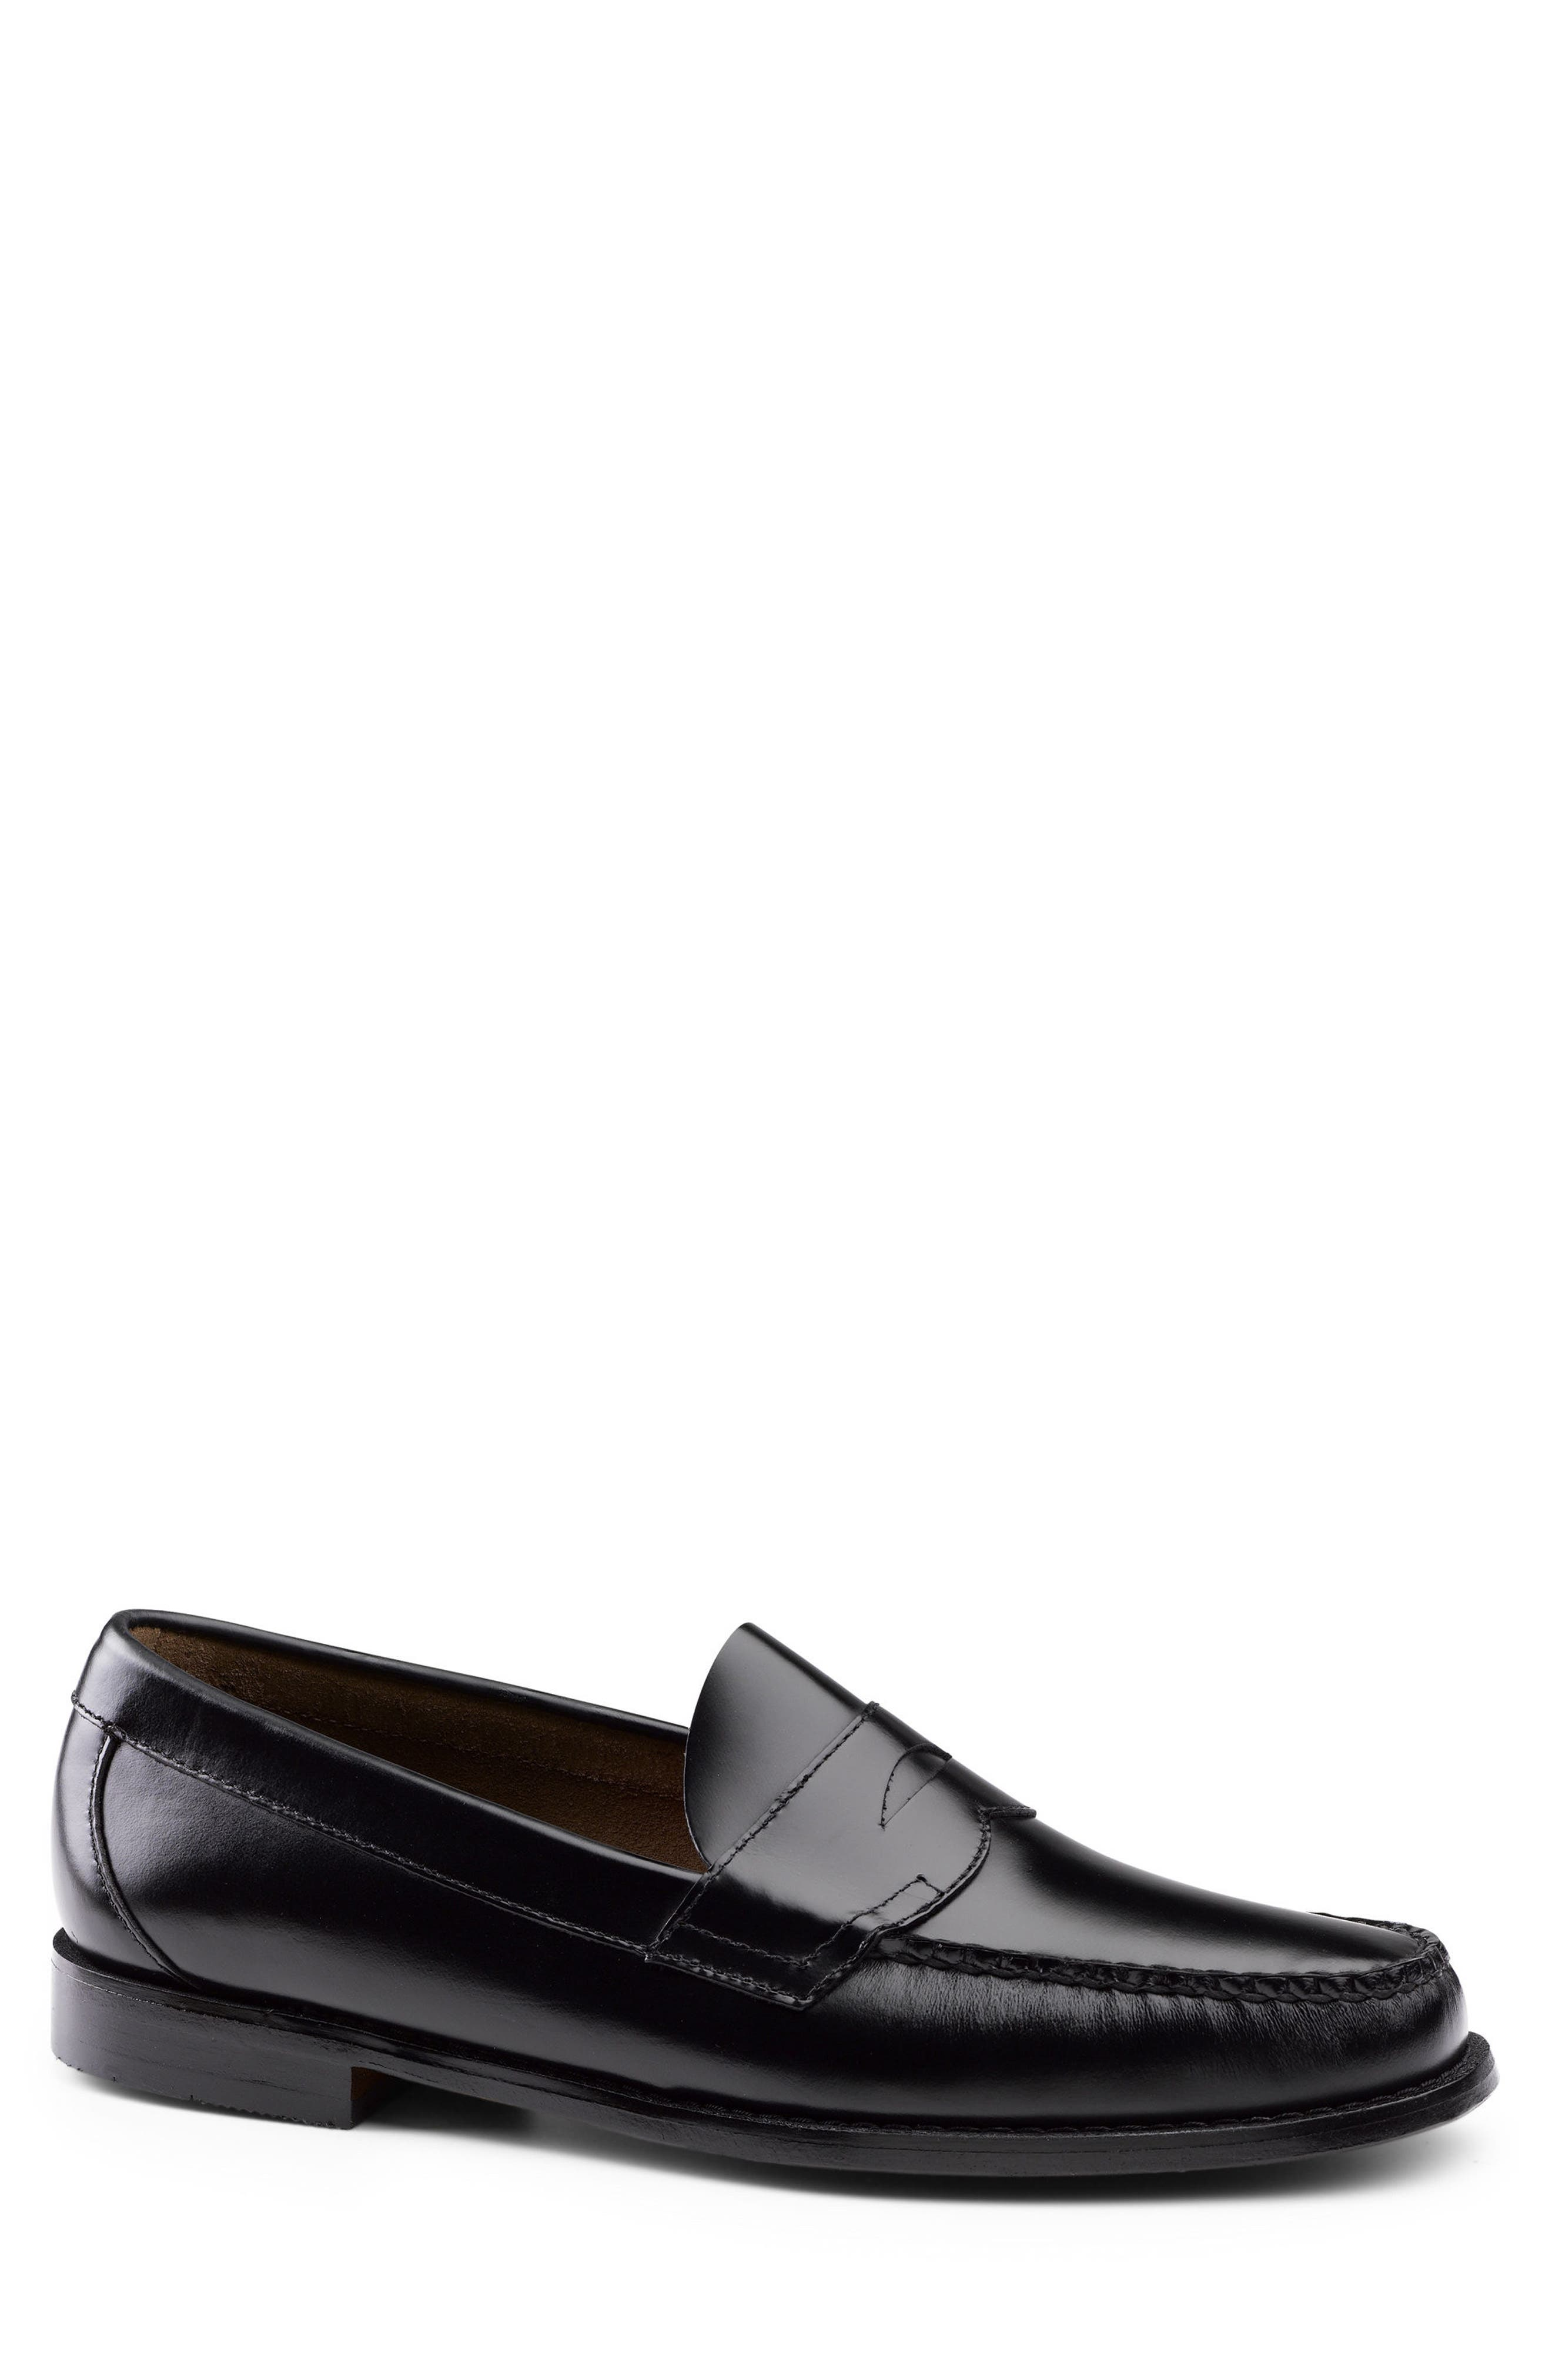 Logan Penny Loafer,                             Alternate thumbnail 6, color,                             001